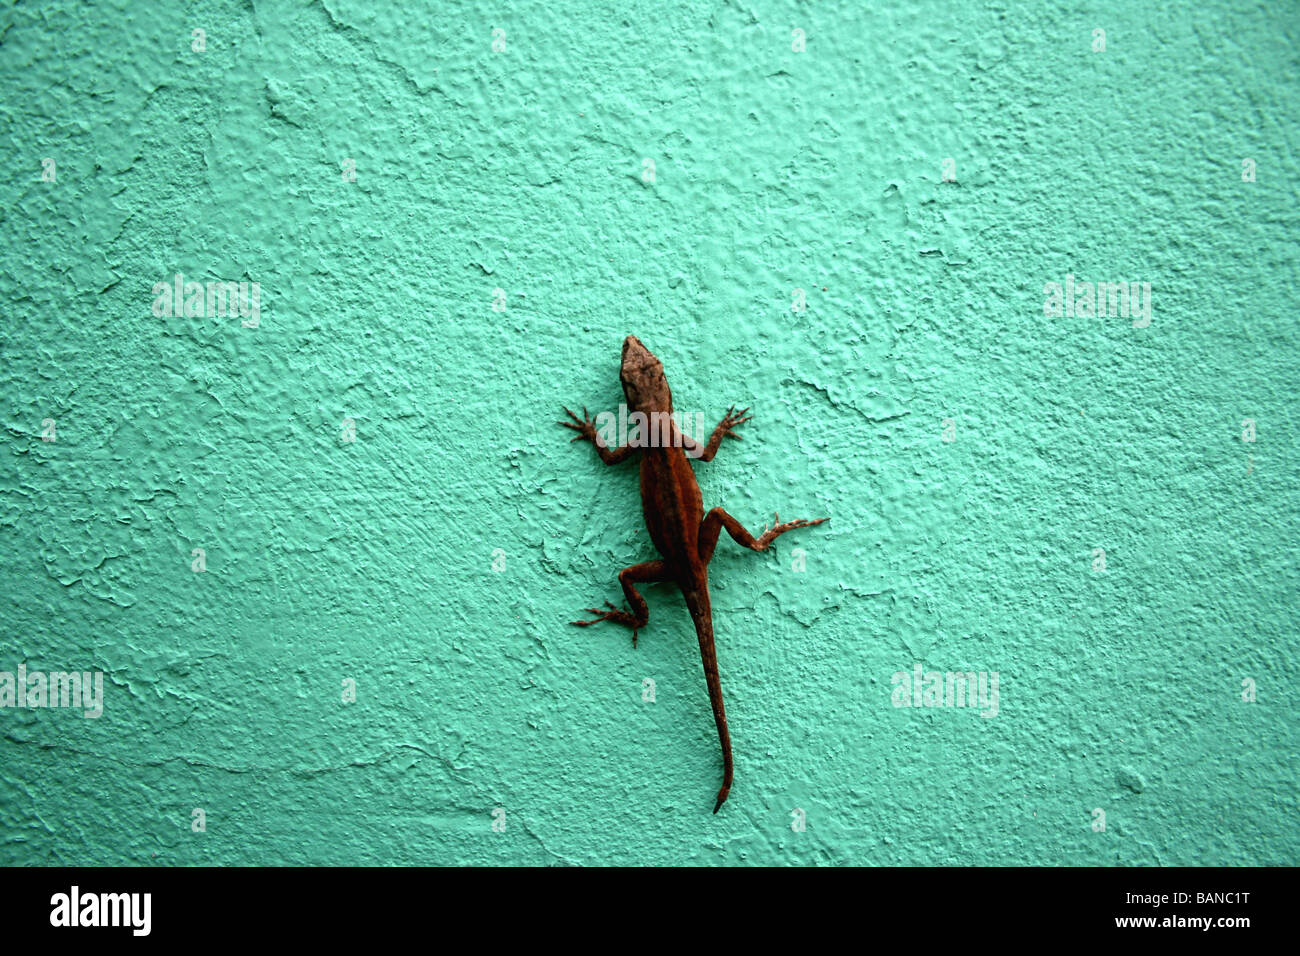 house gecko on green wall - Stock Image